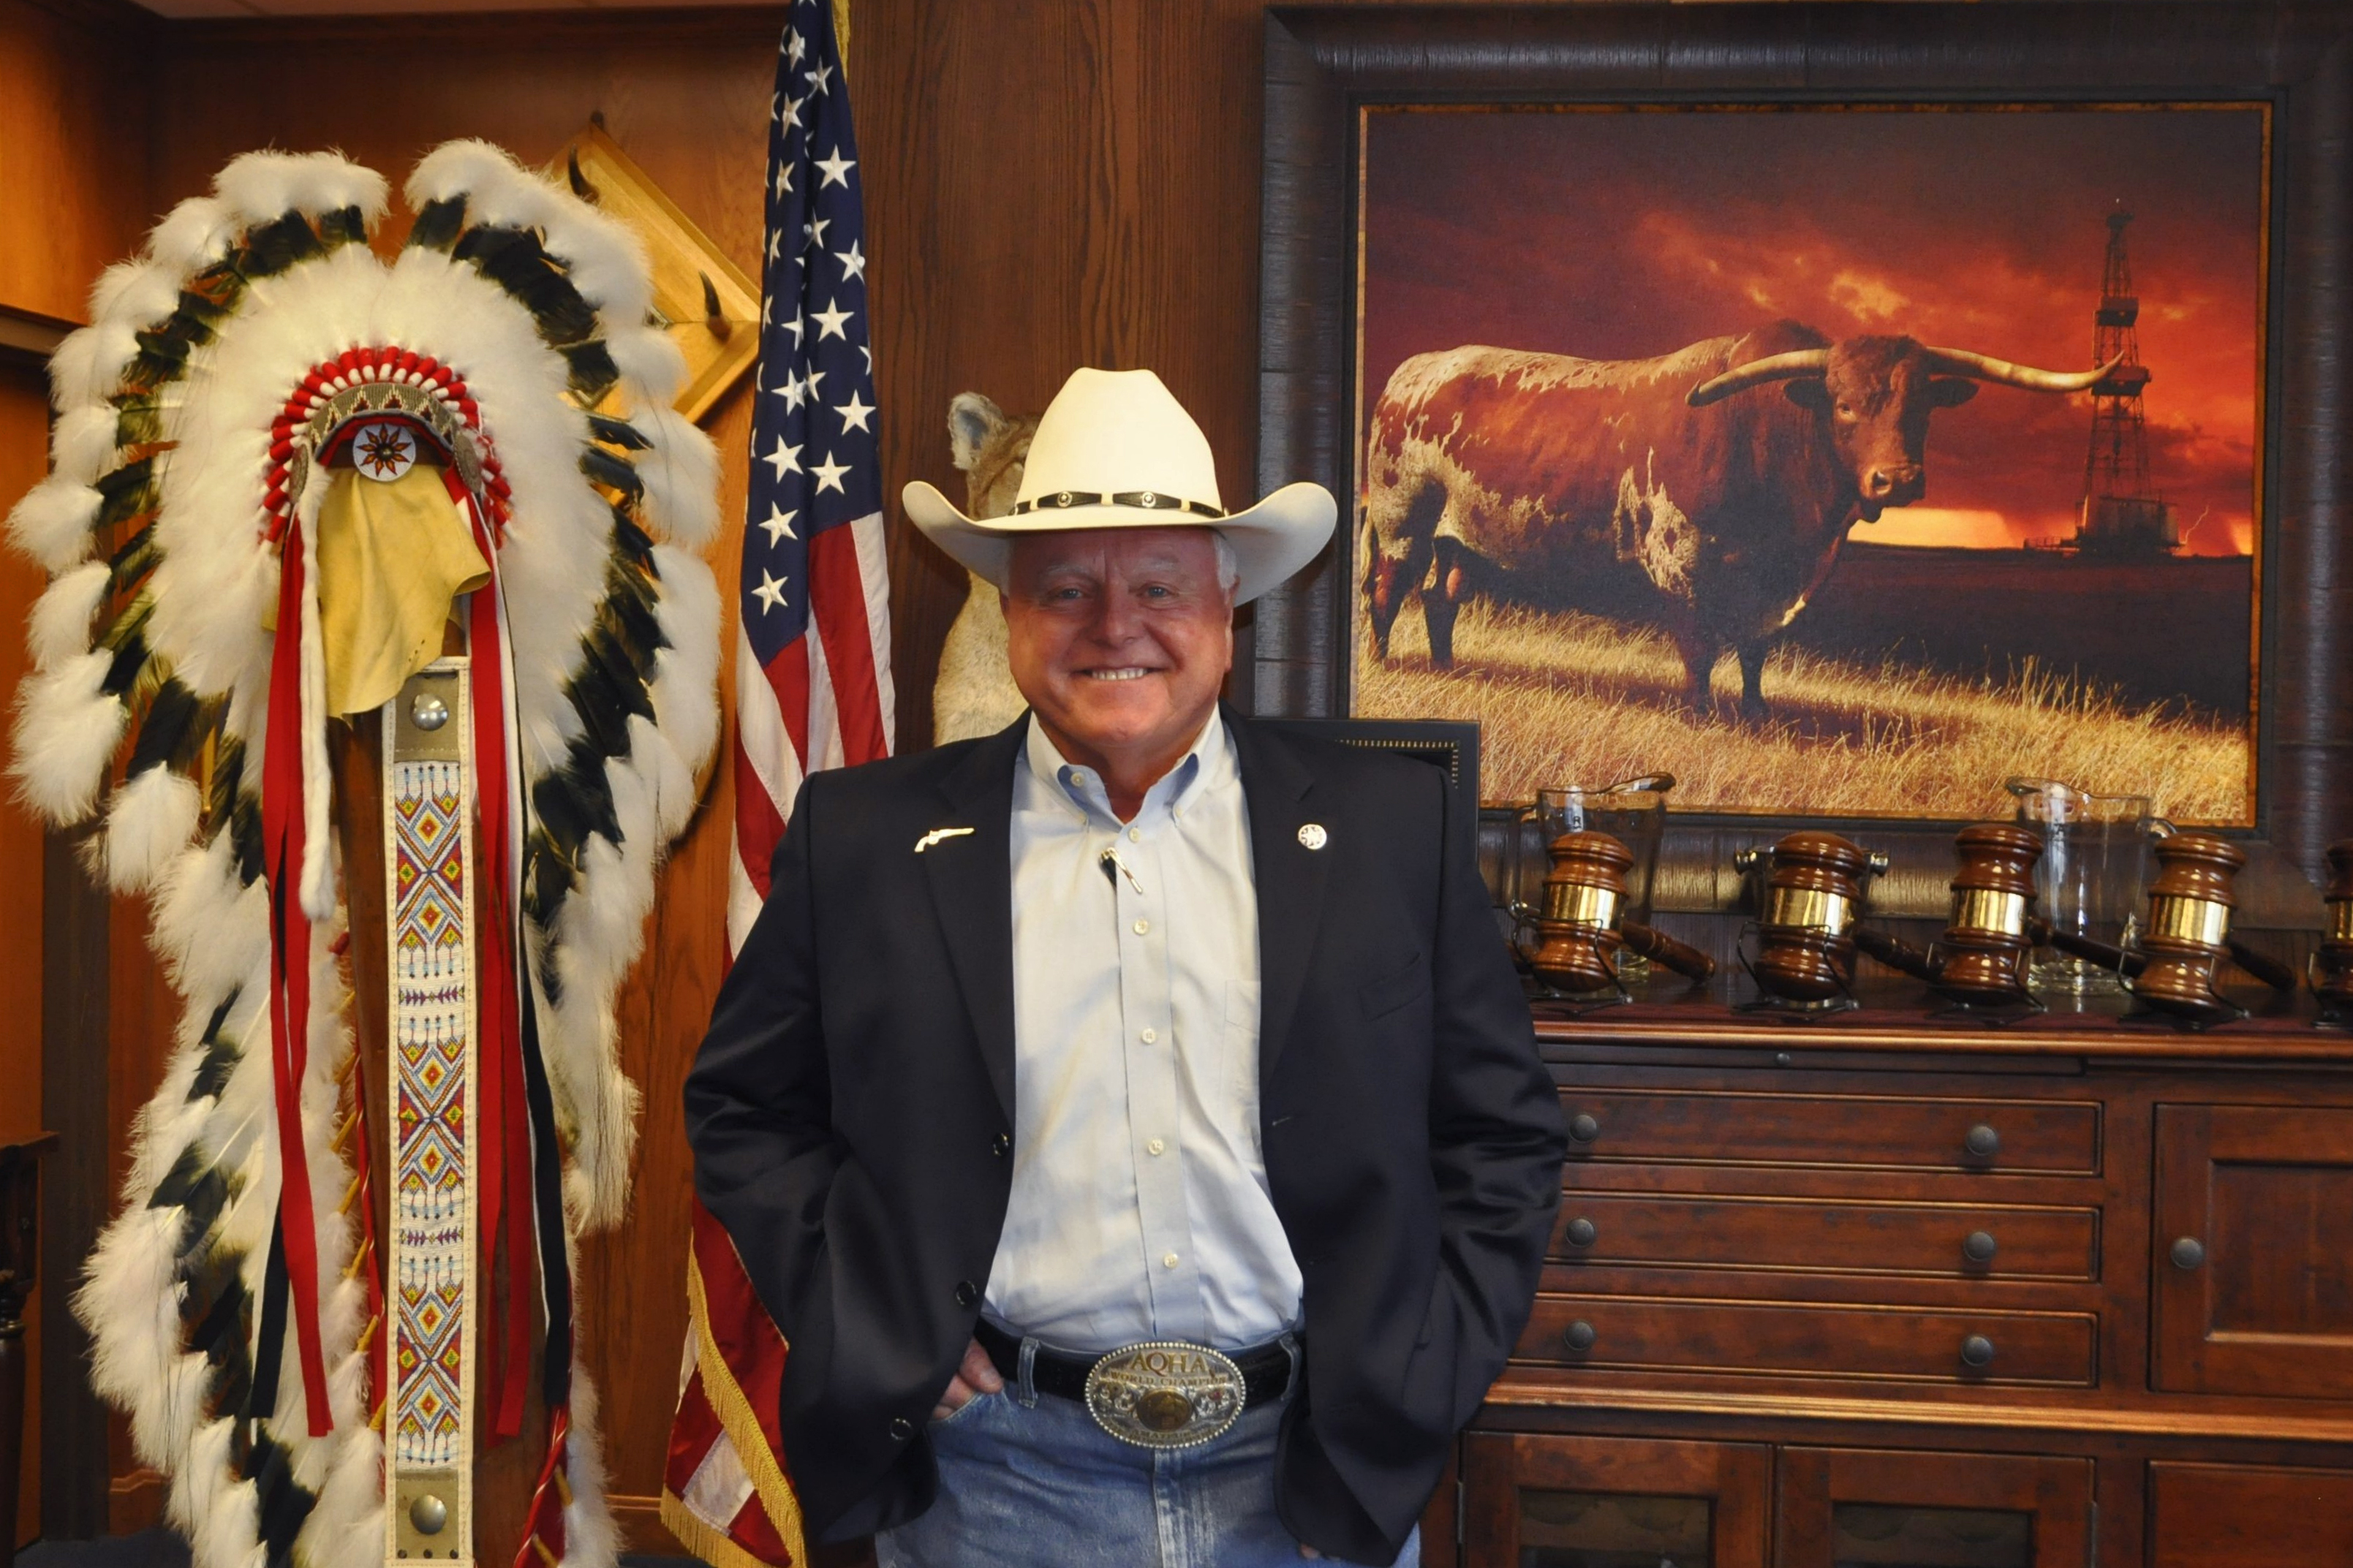 Texas Agriculture Commissioner Sid Miller stands in his office in Austin, Texas on Sept. 12, 2016.